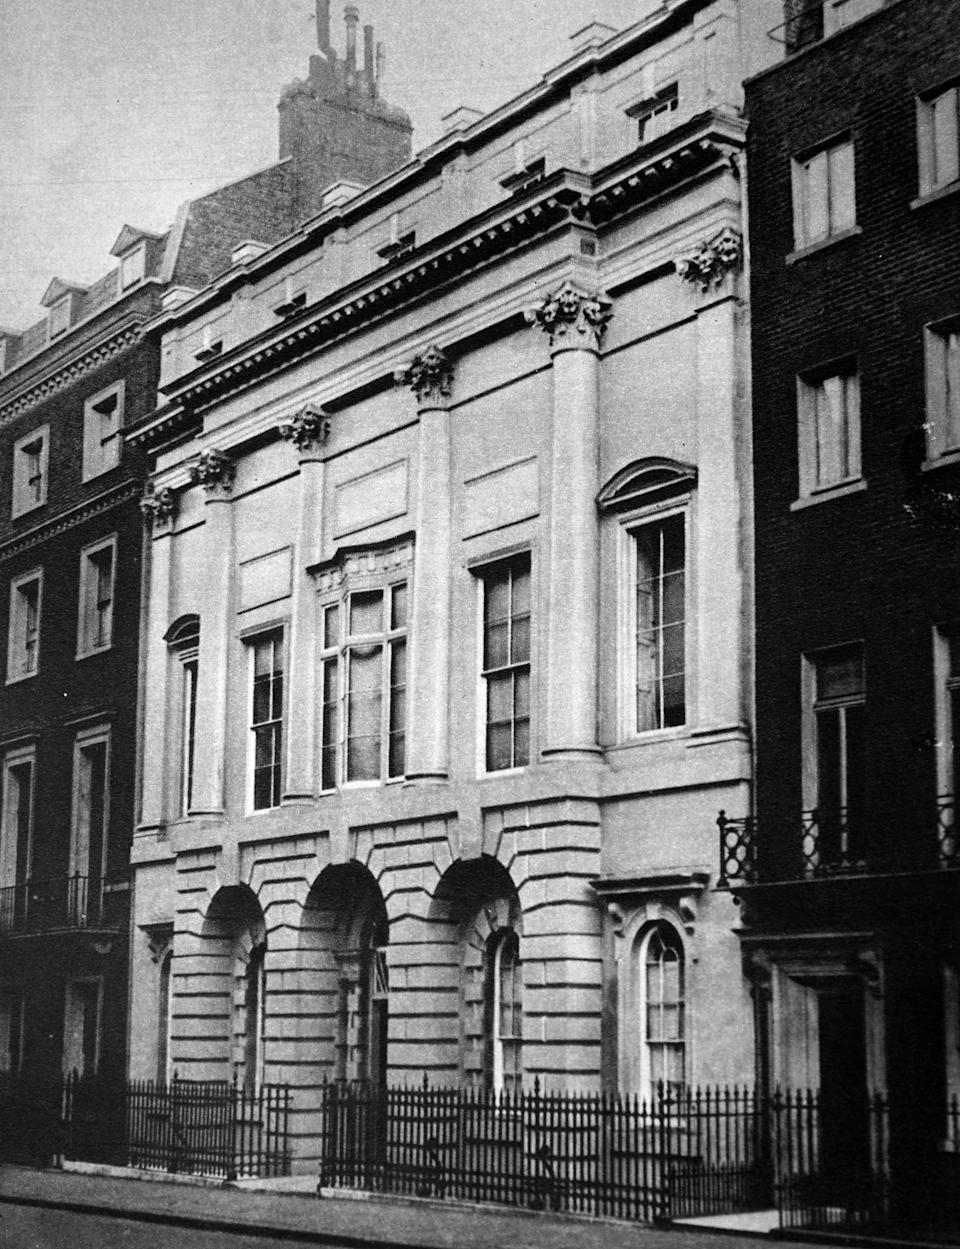 Home of Earl and Countess of Strathmore. at 17 Bruton Street. where Princess Elizabeth (later Queen Elizabeth II). was born. (Photo by: Universal History Archive/Universal Images Group via Getty Images)